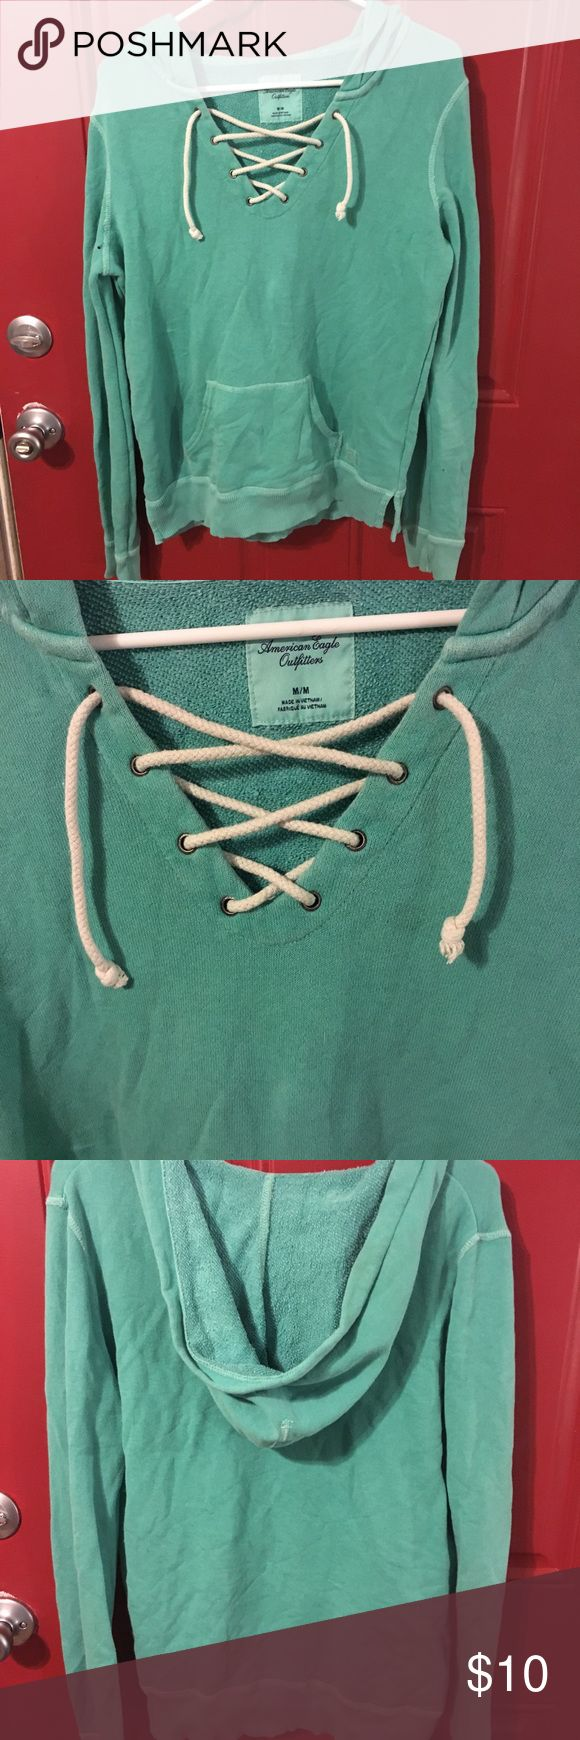 American Eagle lace up hoodie American Eagle lace up hoodie, has very small hole. Photo shows hole. American Eagle Outfitters Tops Sweatshirts & Hoodies